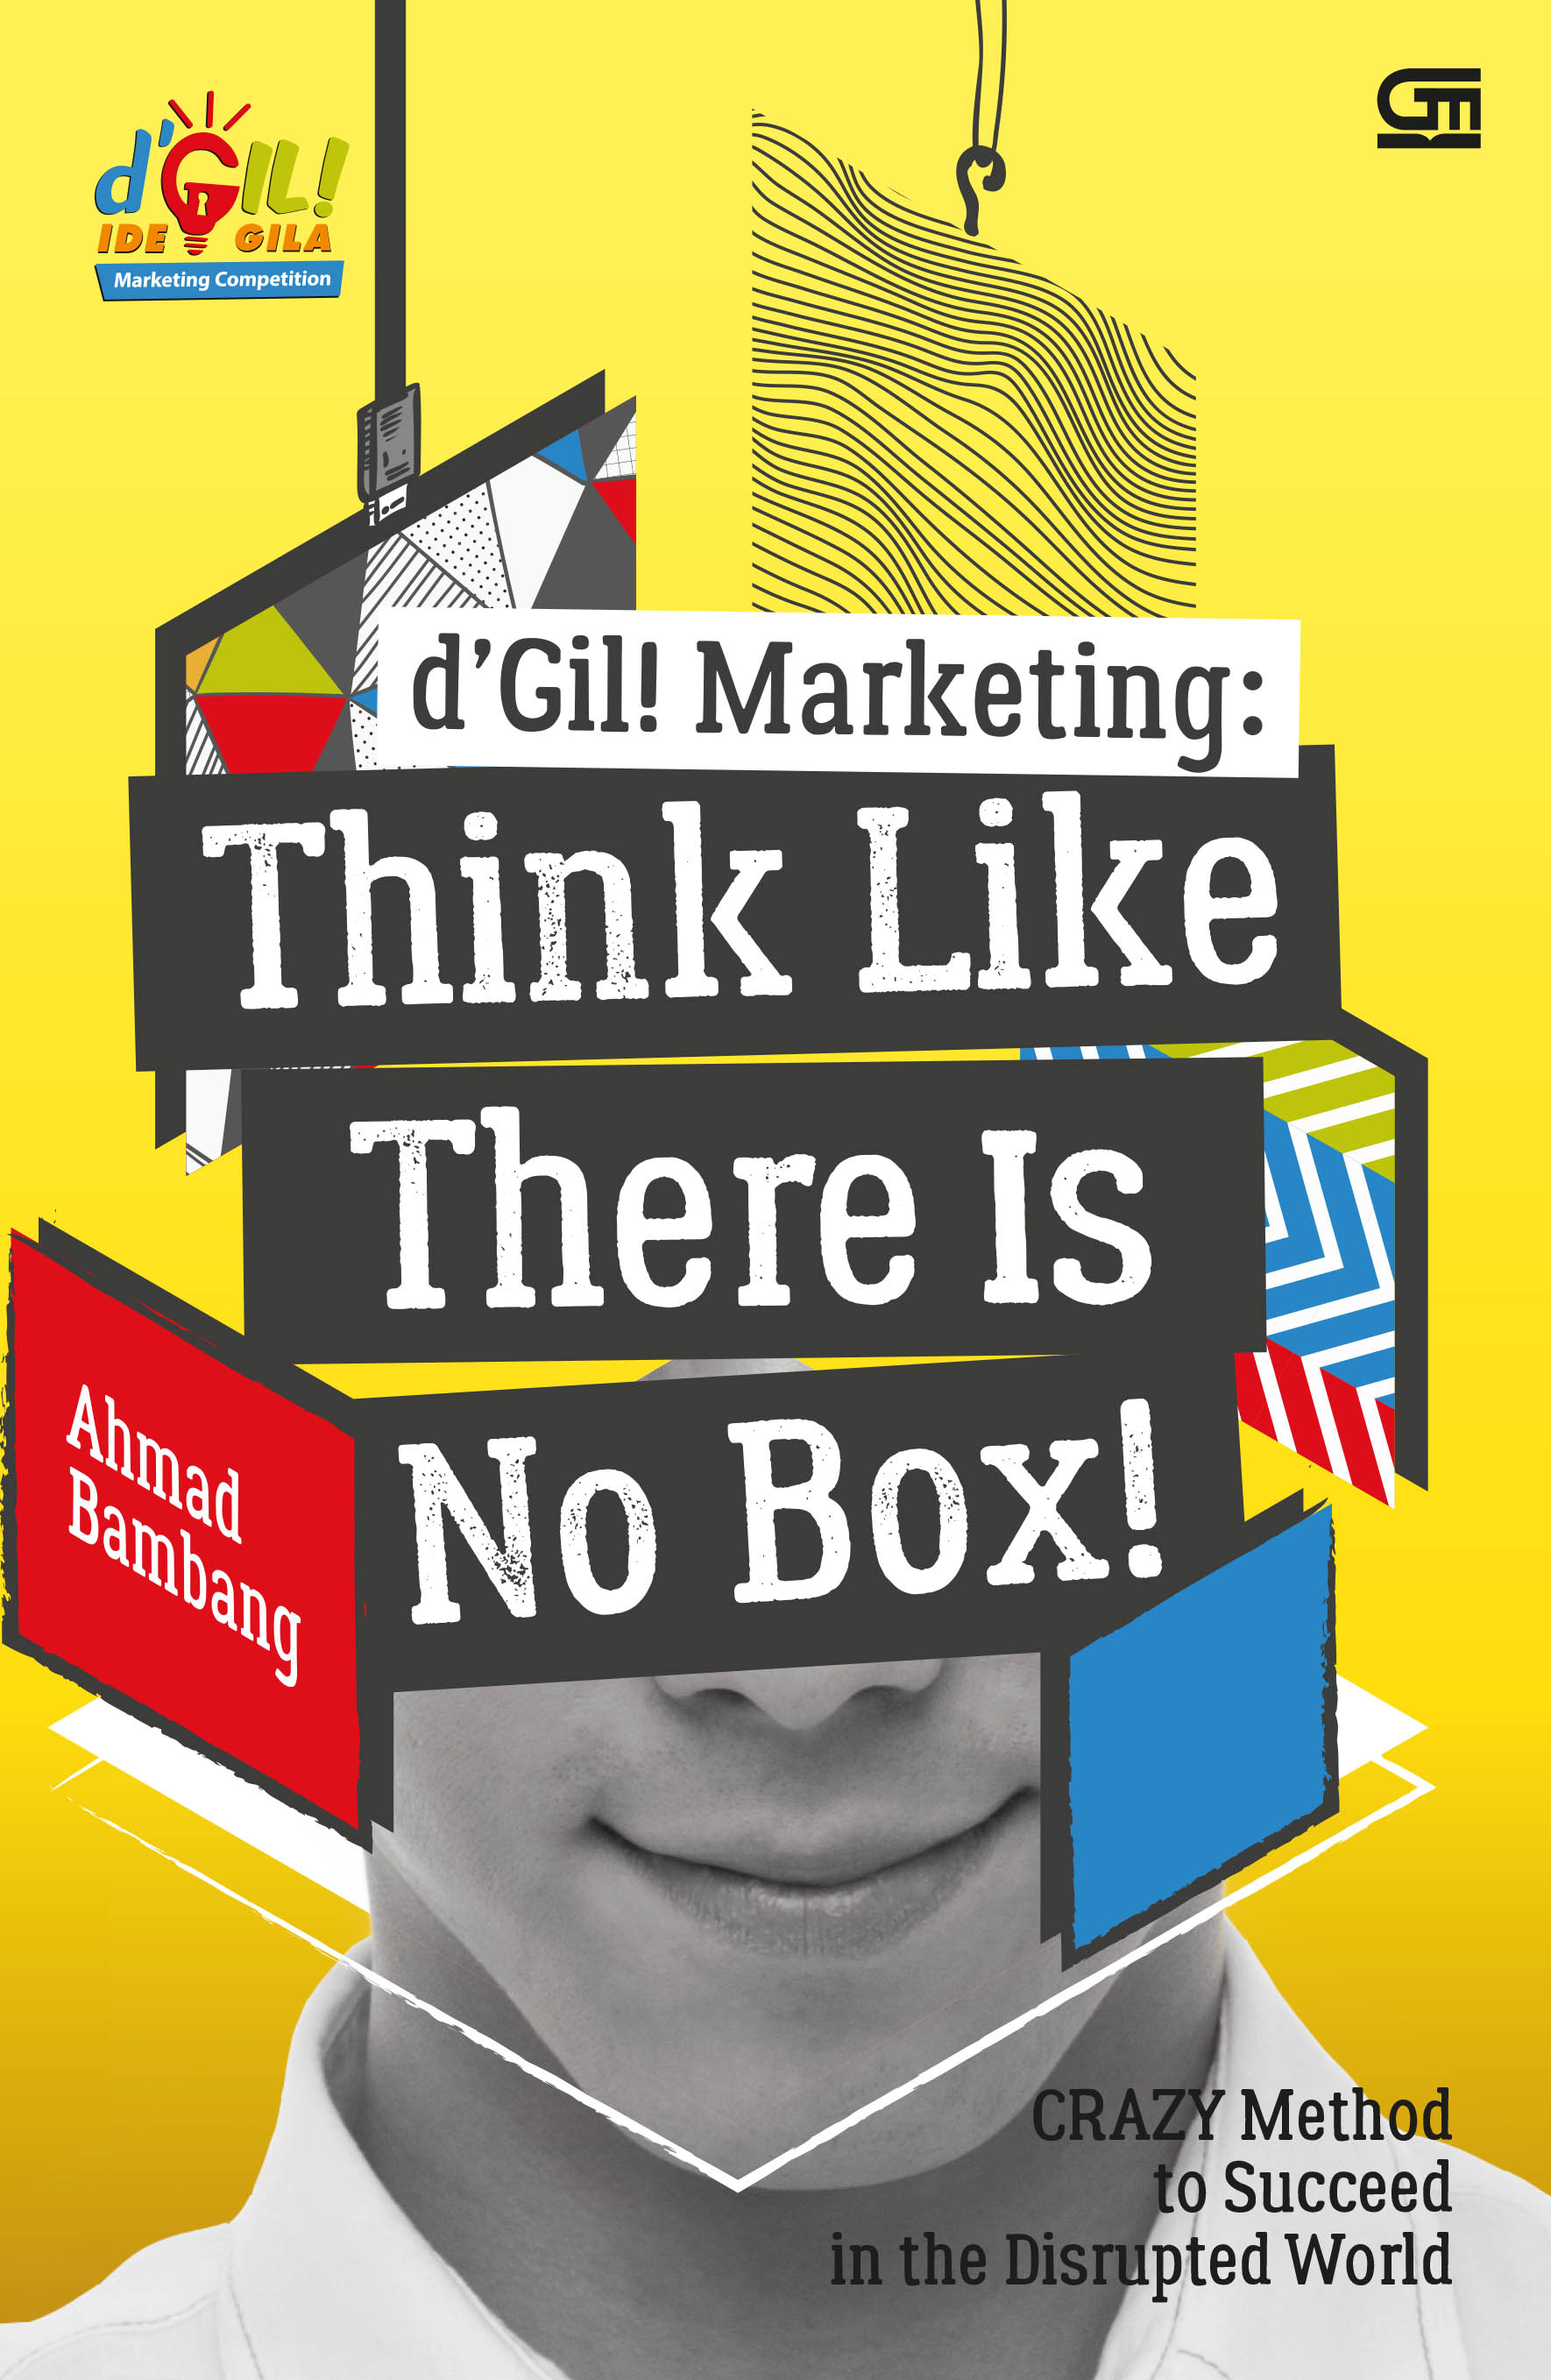 D  Gil! Marketing: Think Like There is No Box